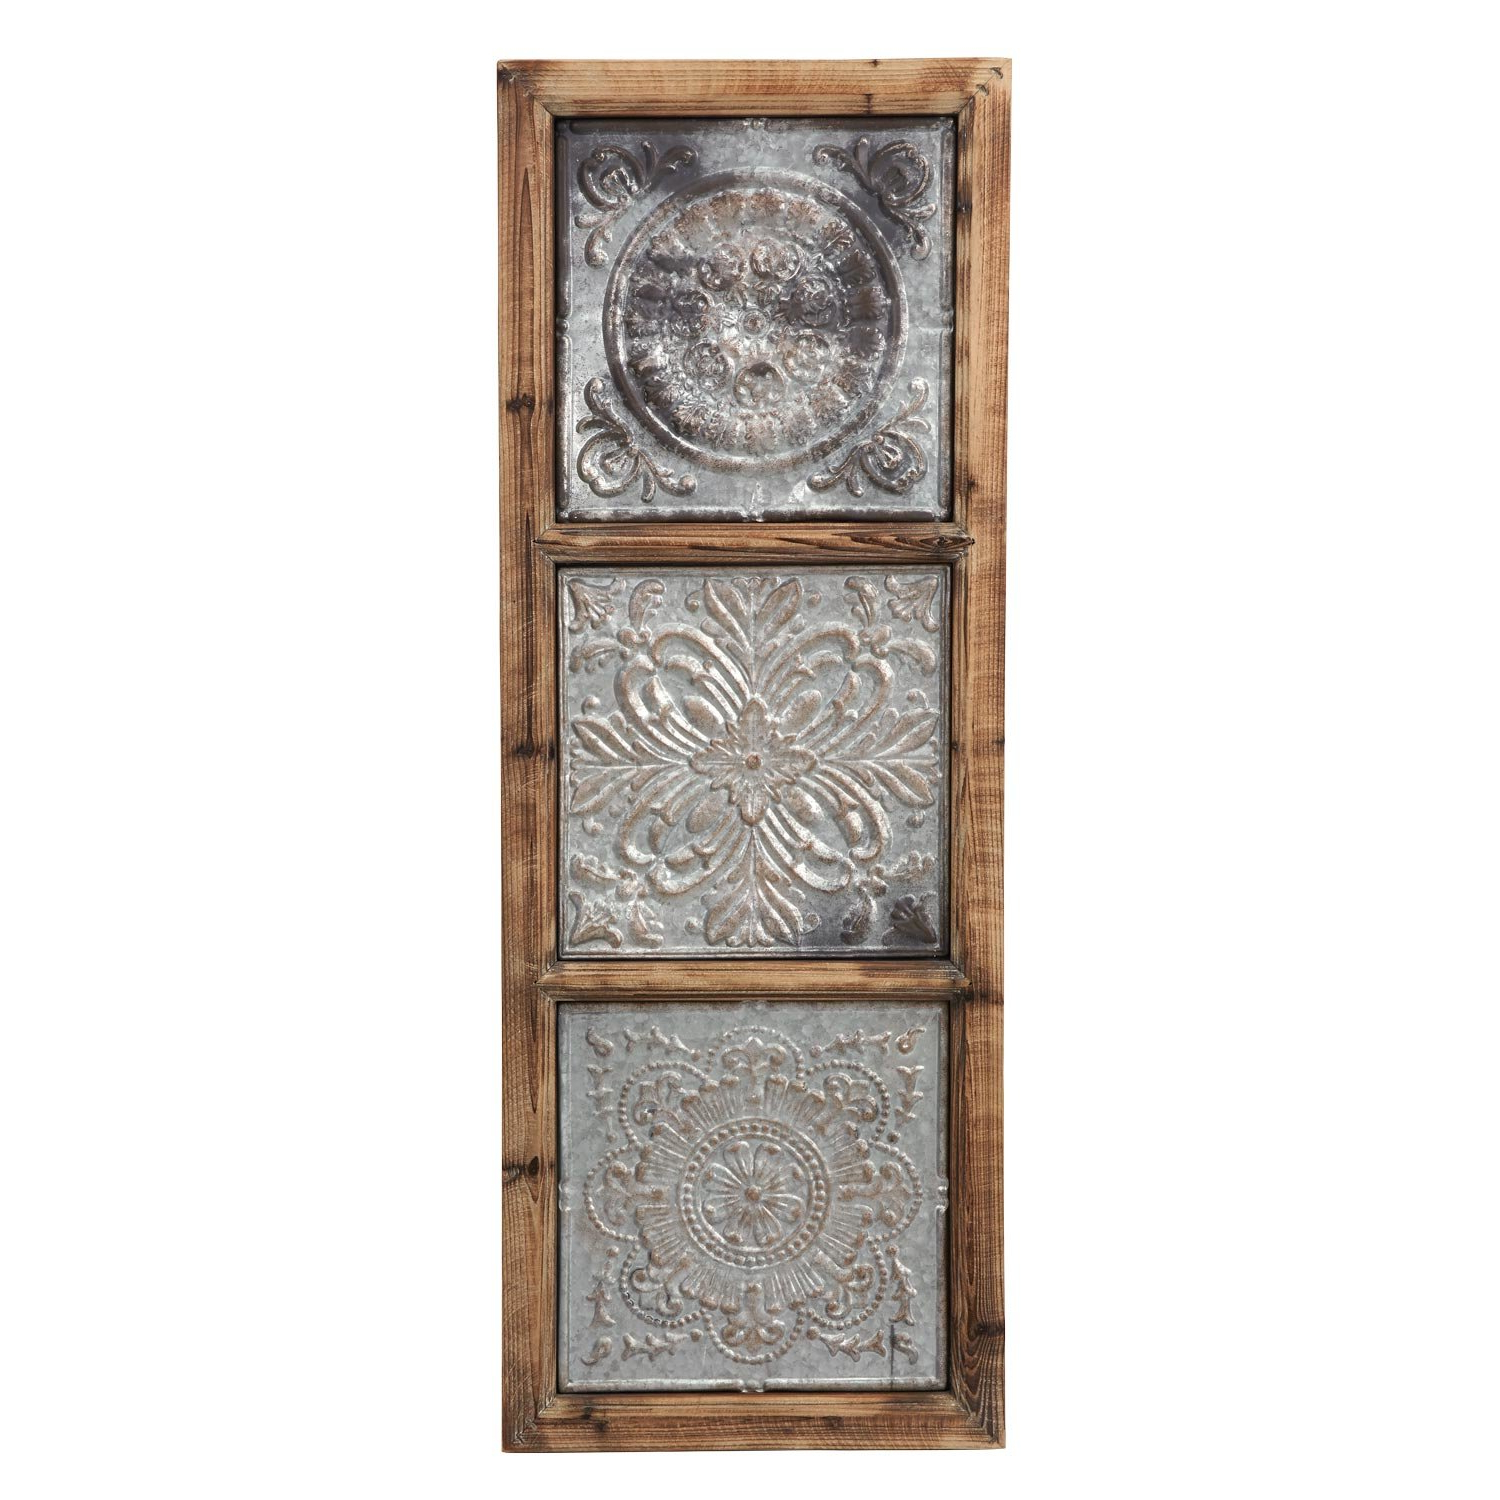 2020 Maxwell Wood And Metal Wall Decor With Regard To Union Rustic Punched Metal Vertical Wall Décor & Reviews (View 3 of 20)